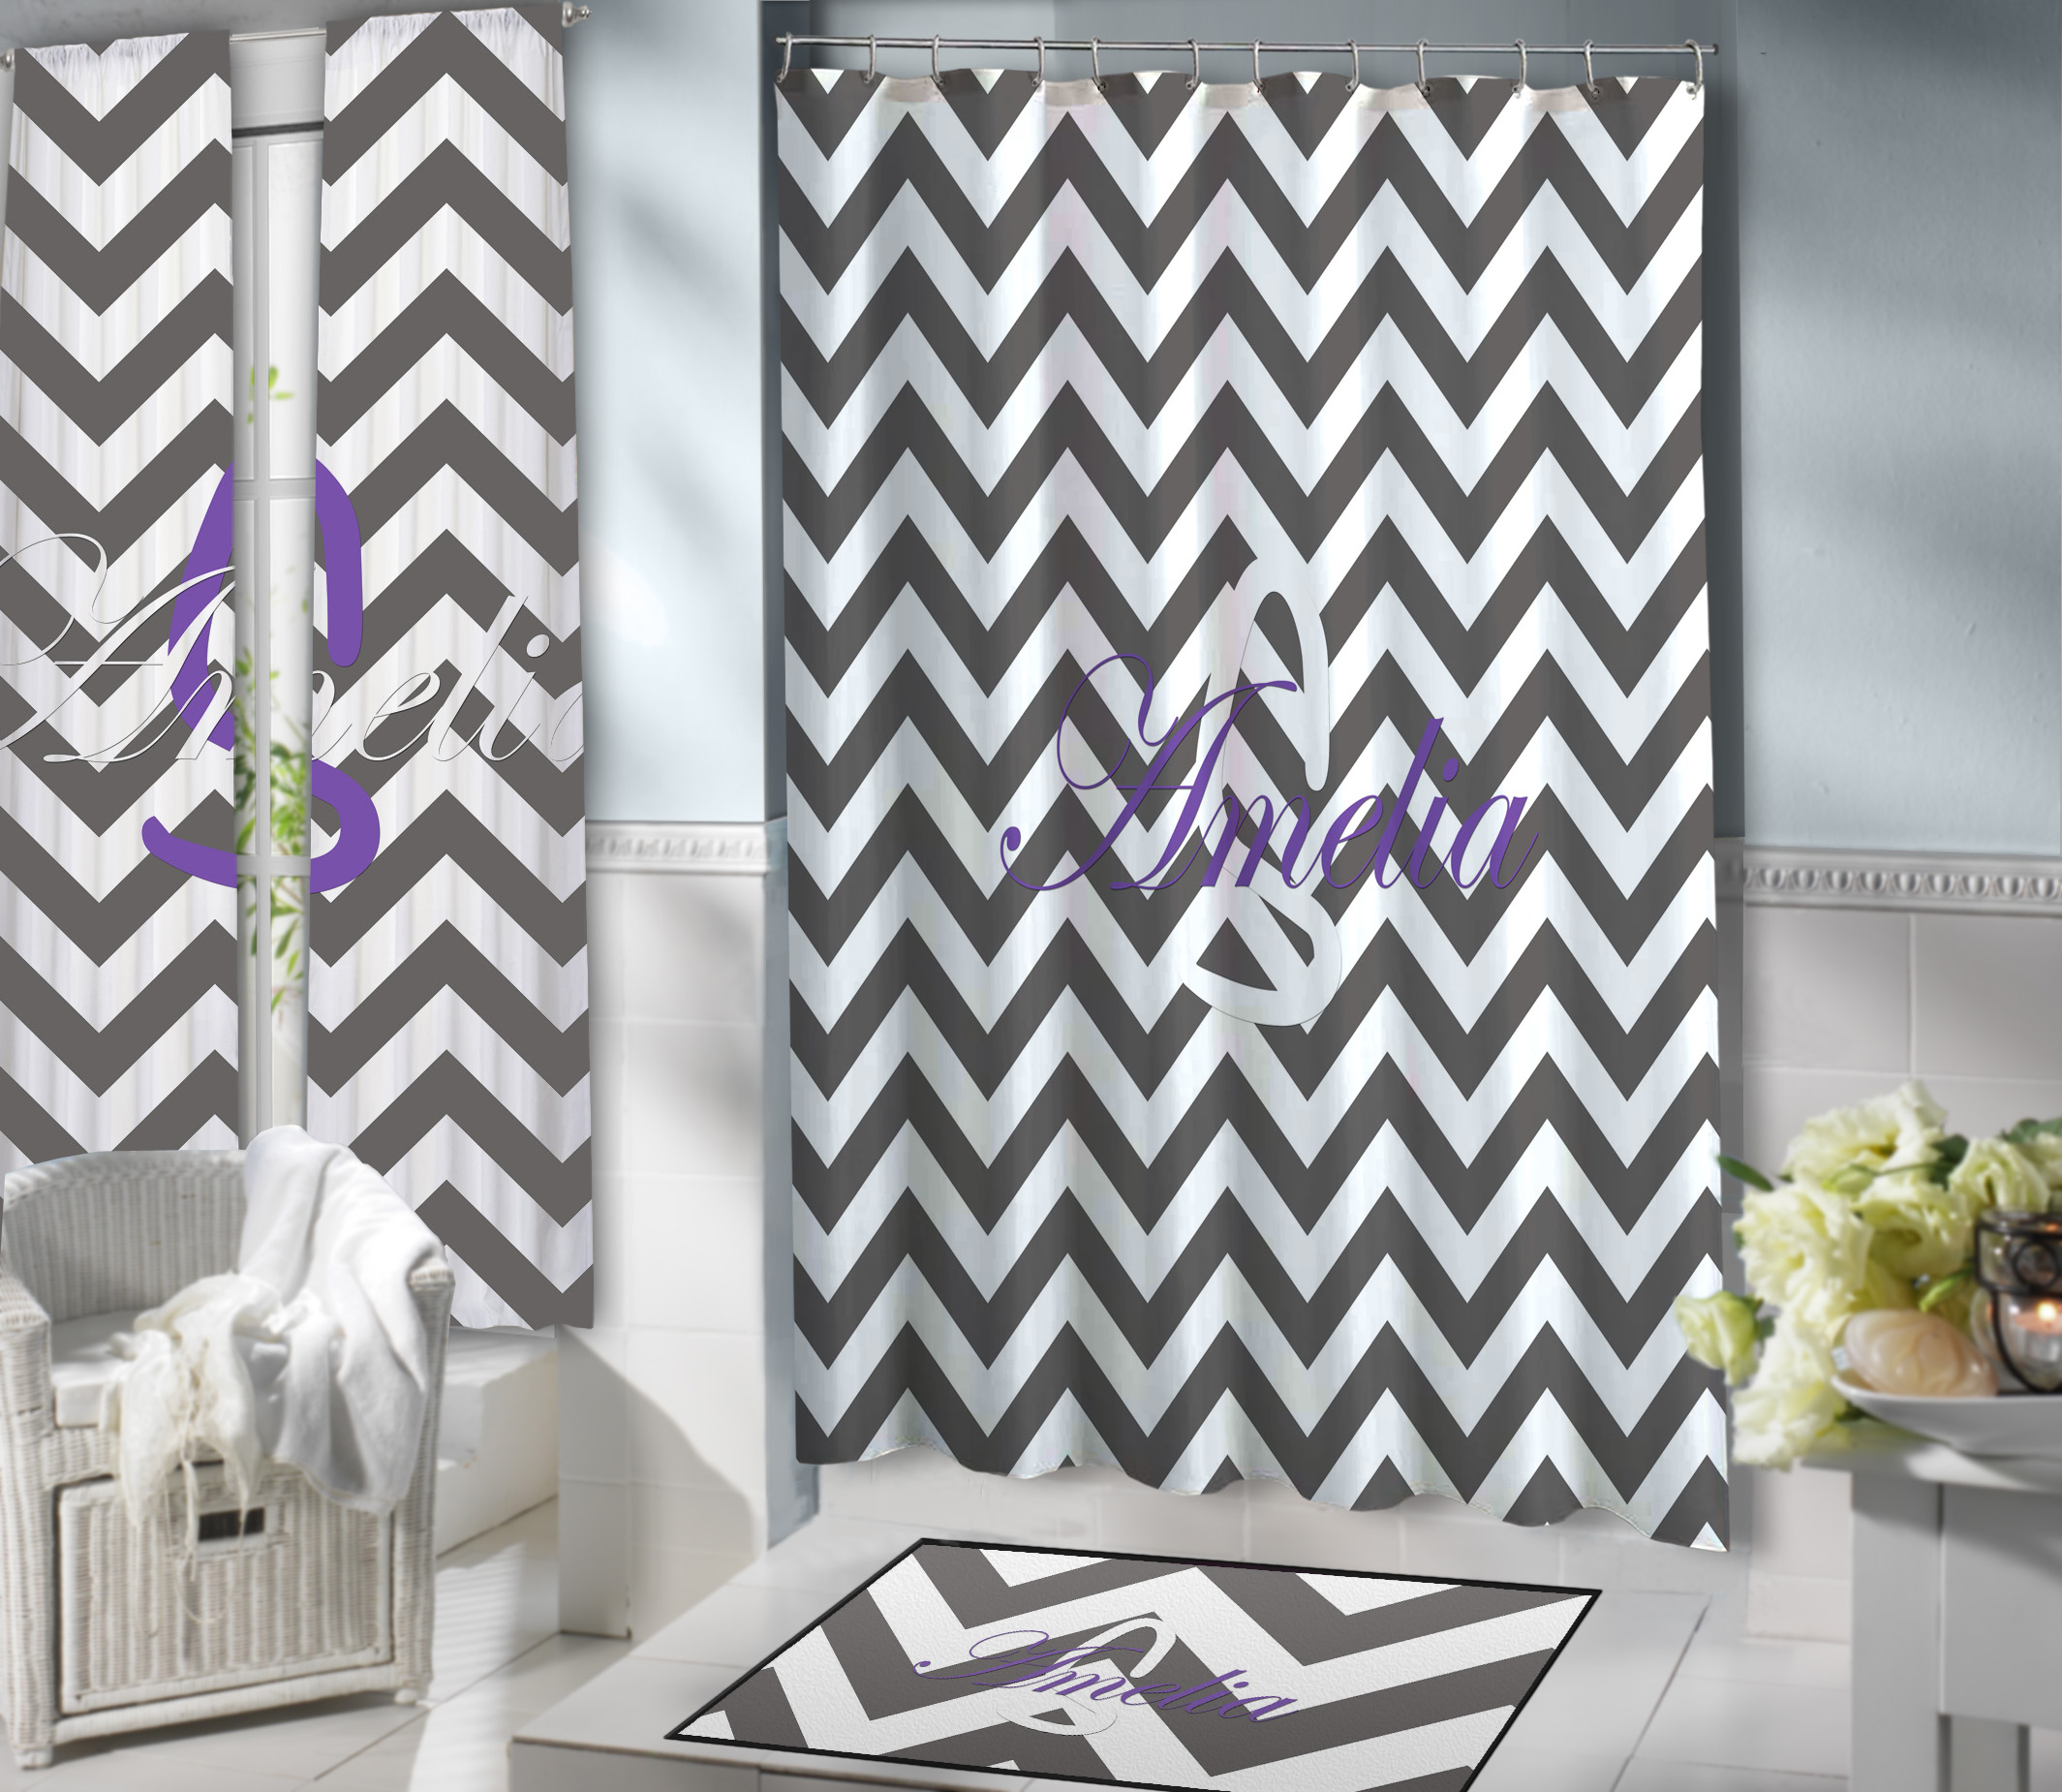 Teen Gray and White Chevron Fabric Shower Curtain with